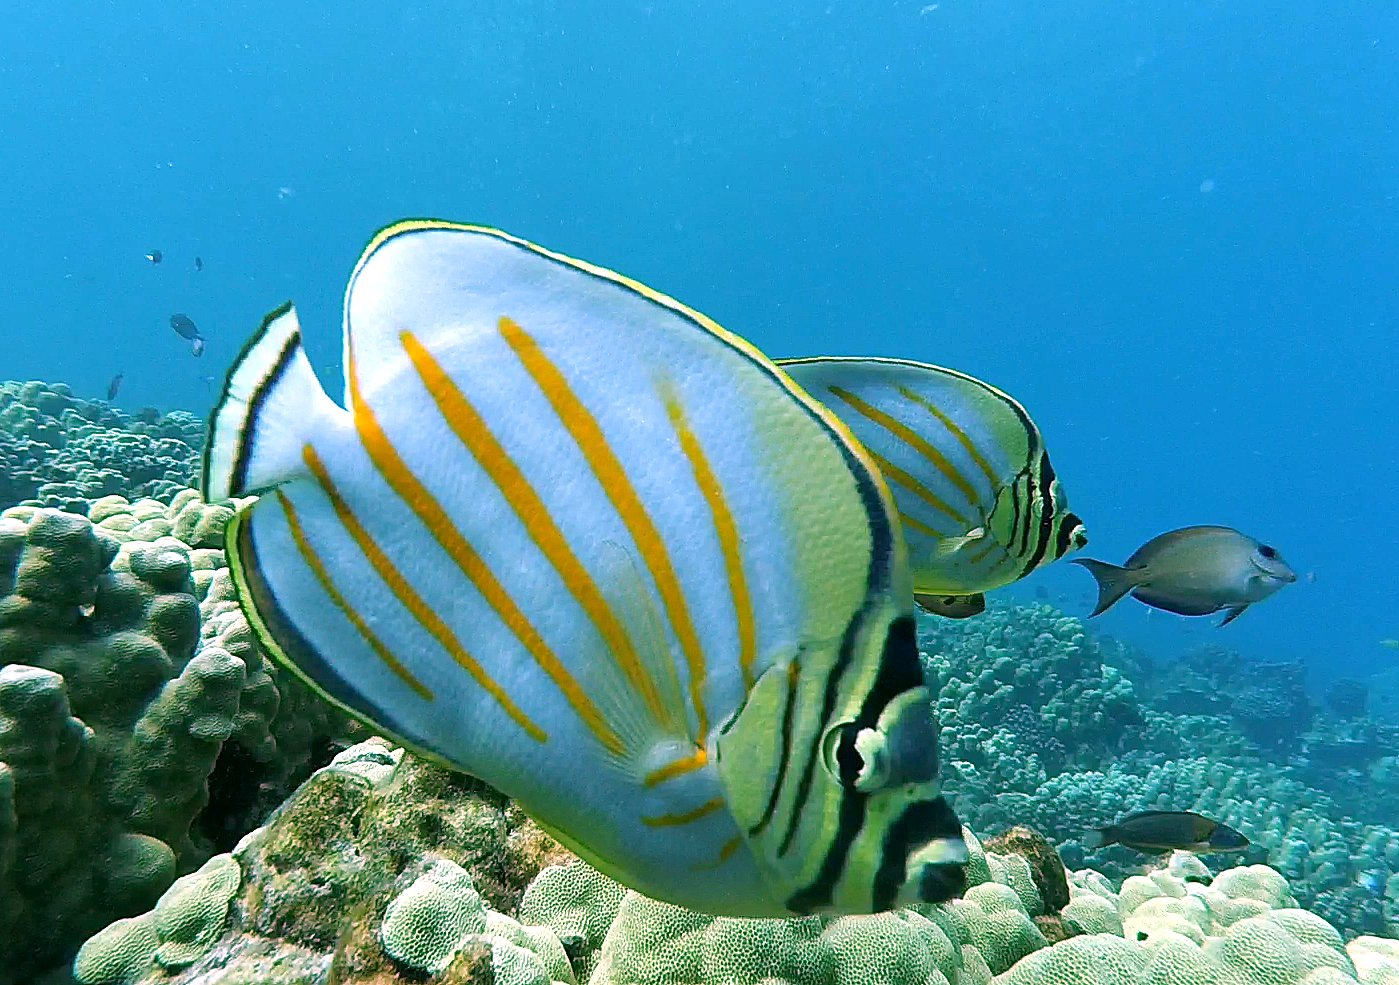 An Ornamental Butterflyfish examines a stationary camera deployed at Kealakekua, Hawaii Island.